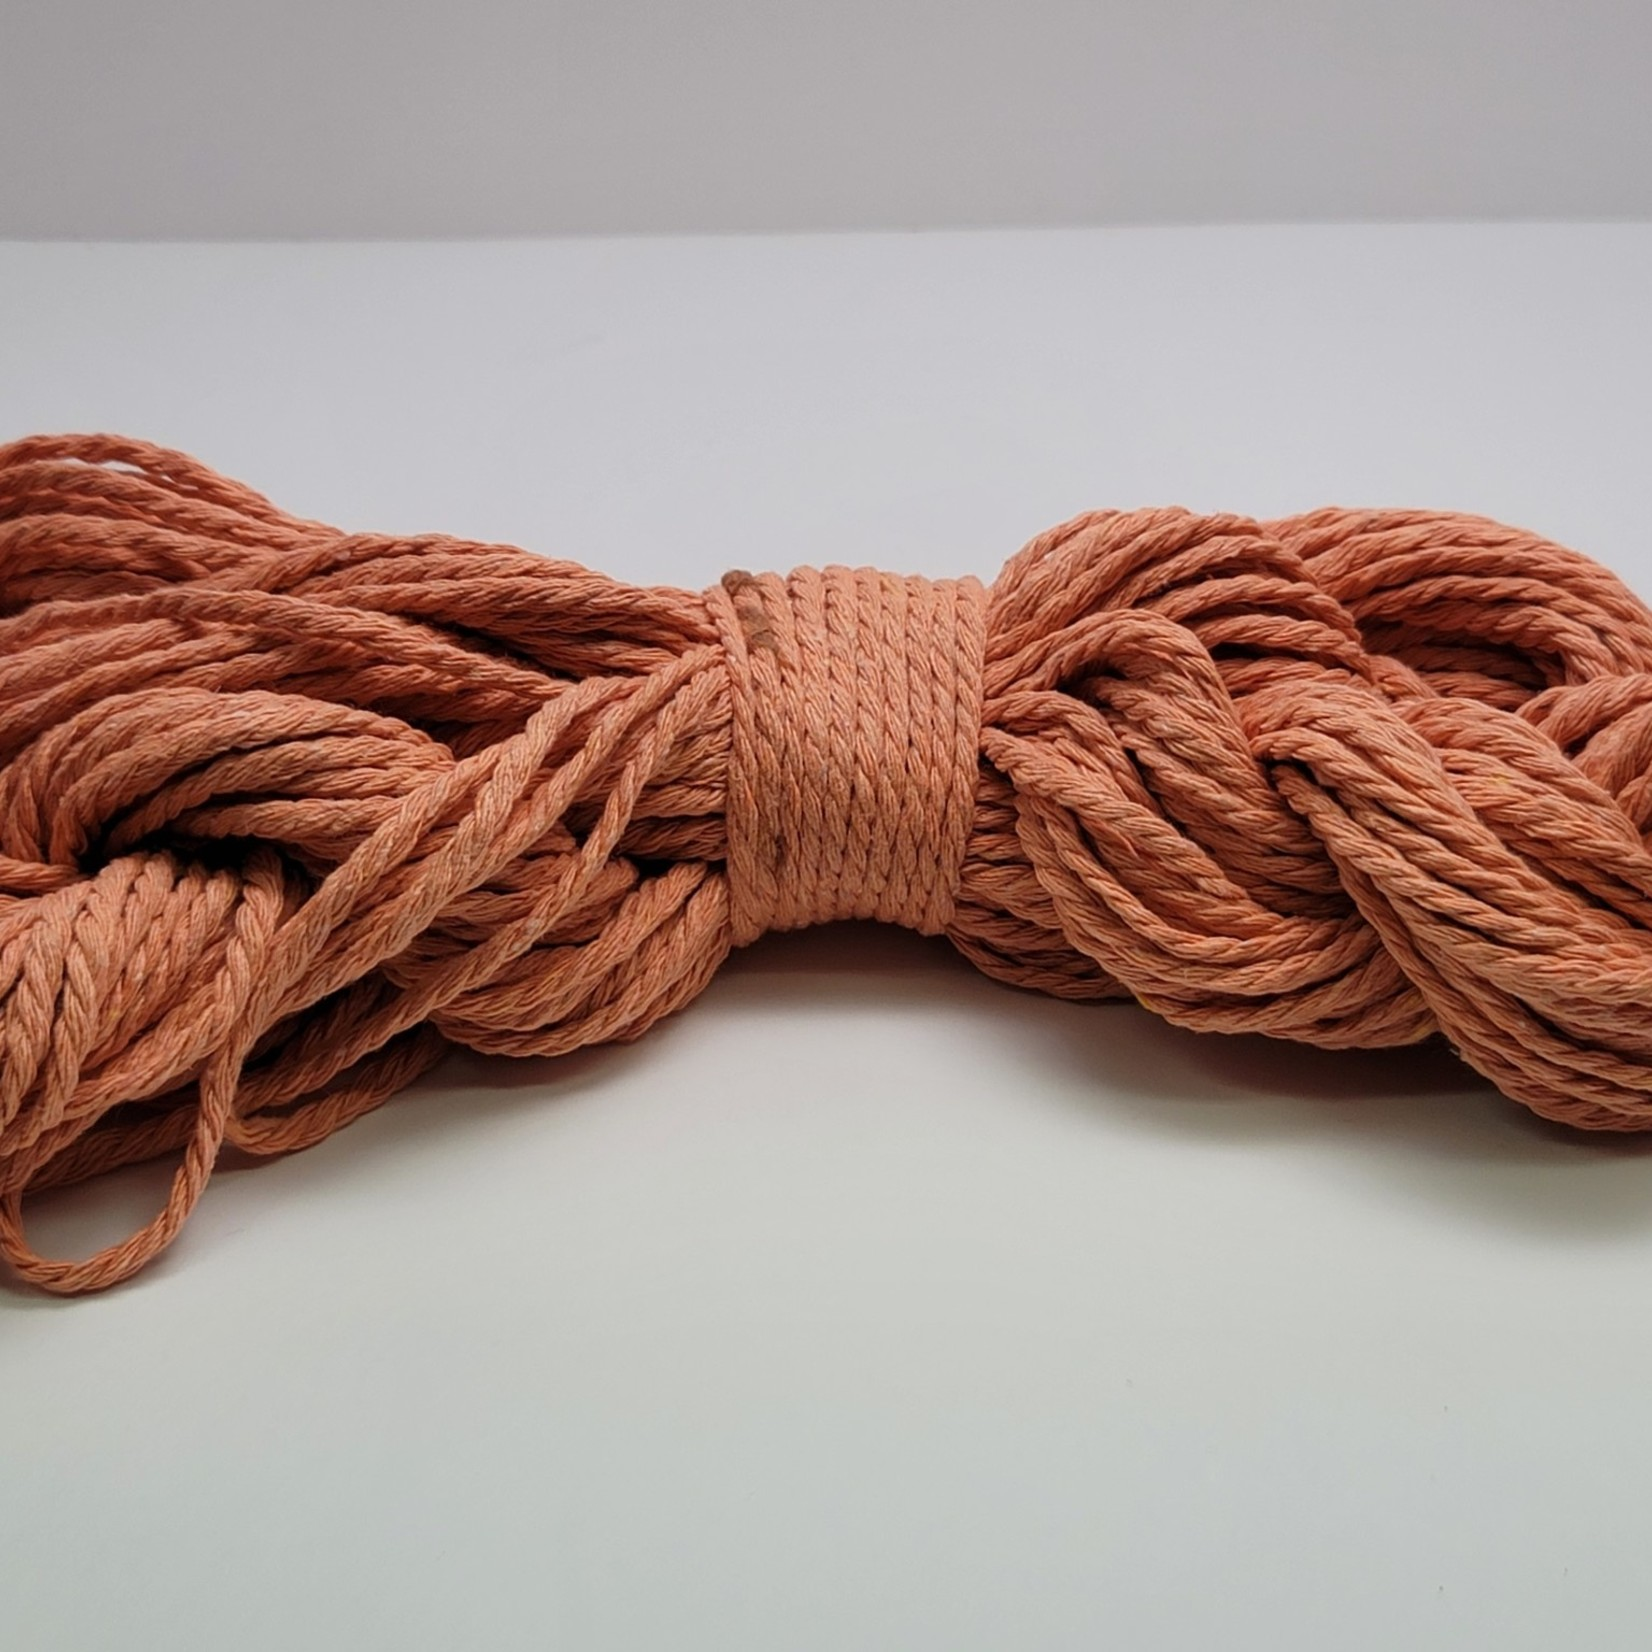 3mm Macrame String - Approx 50m = 164ft - Coral